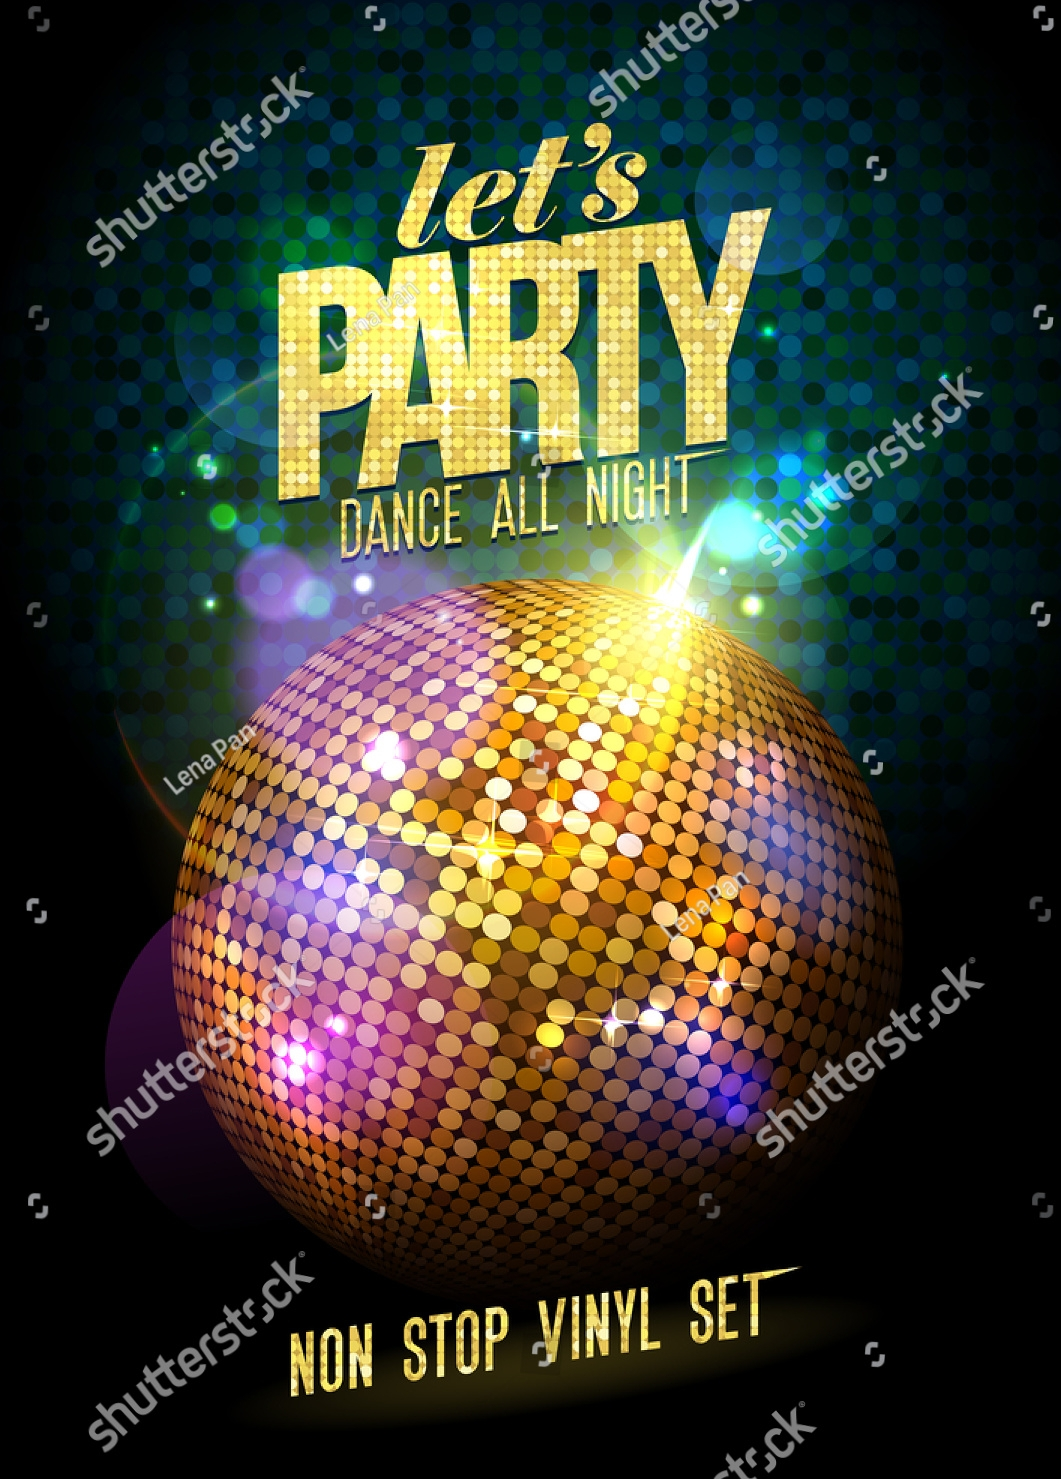 ball dance party invitation